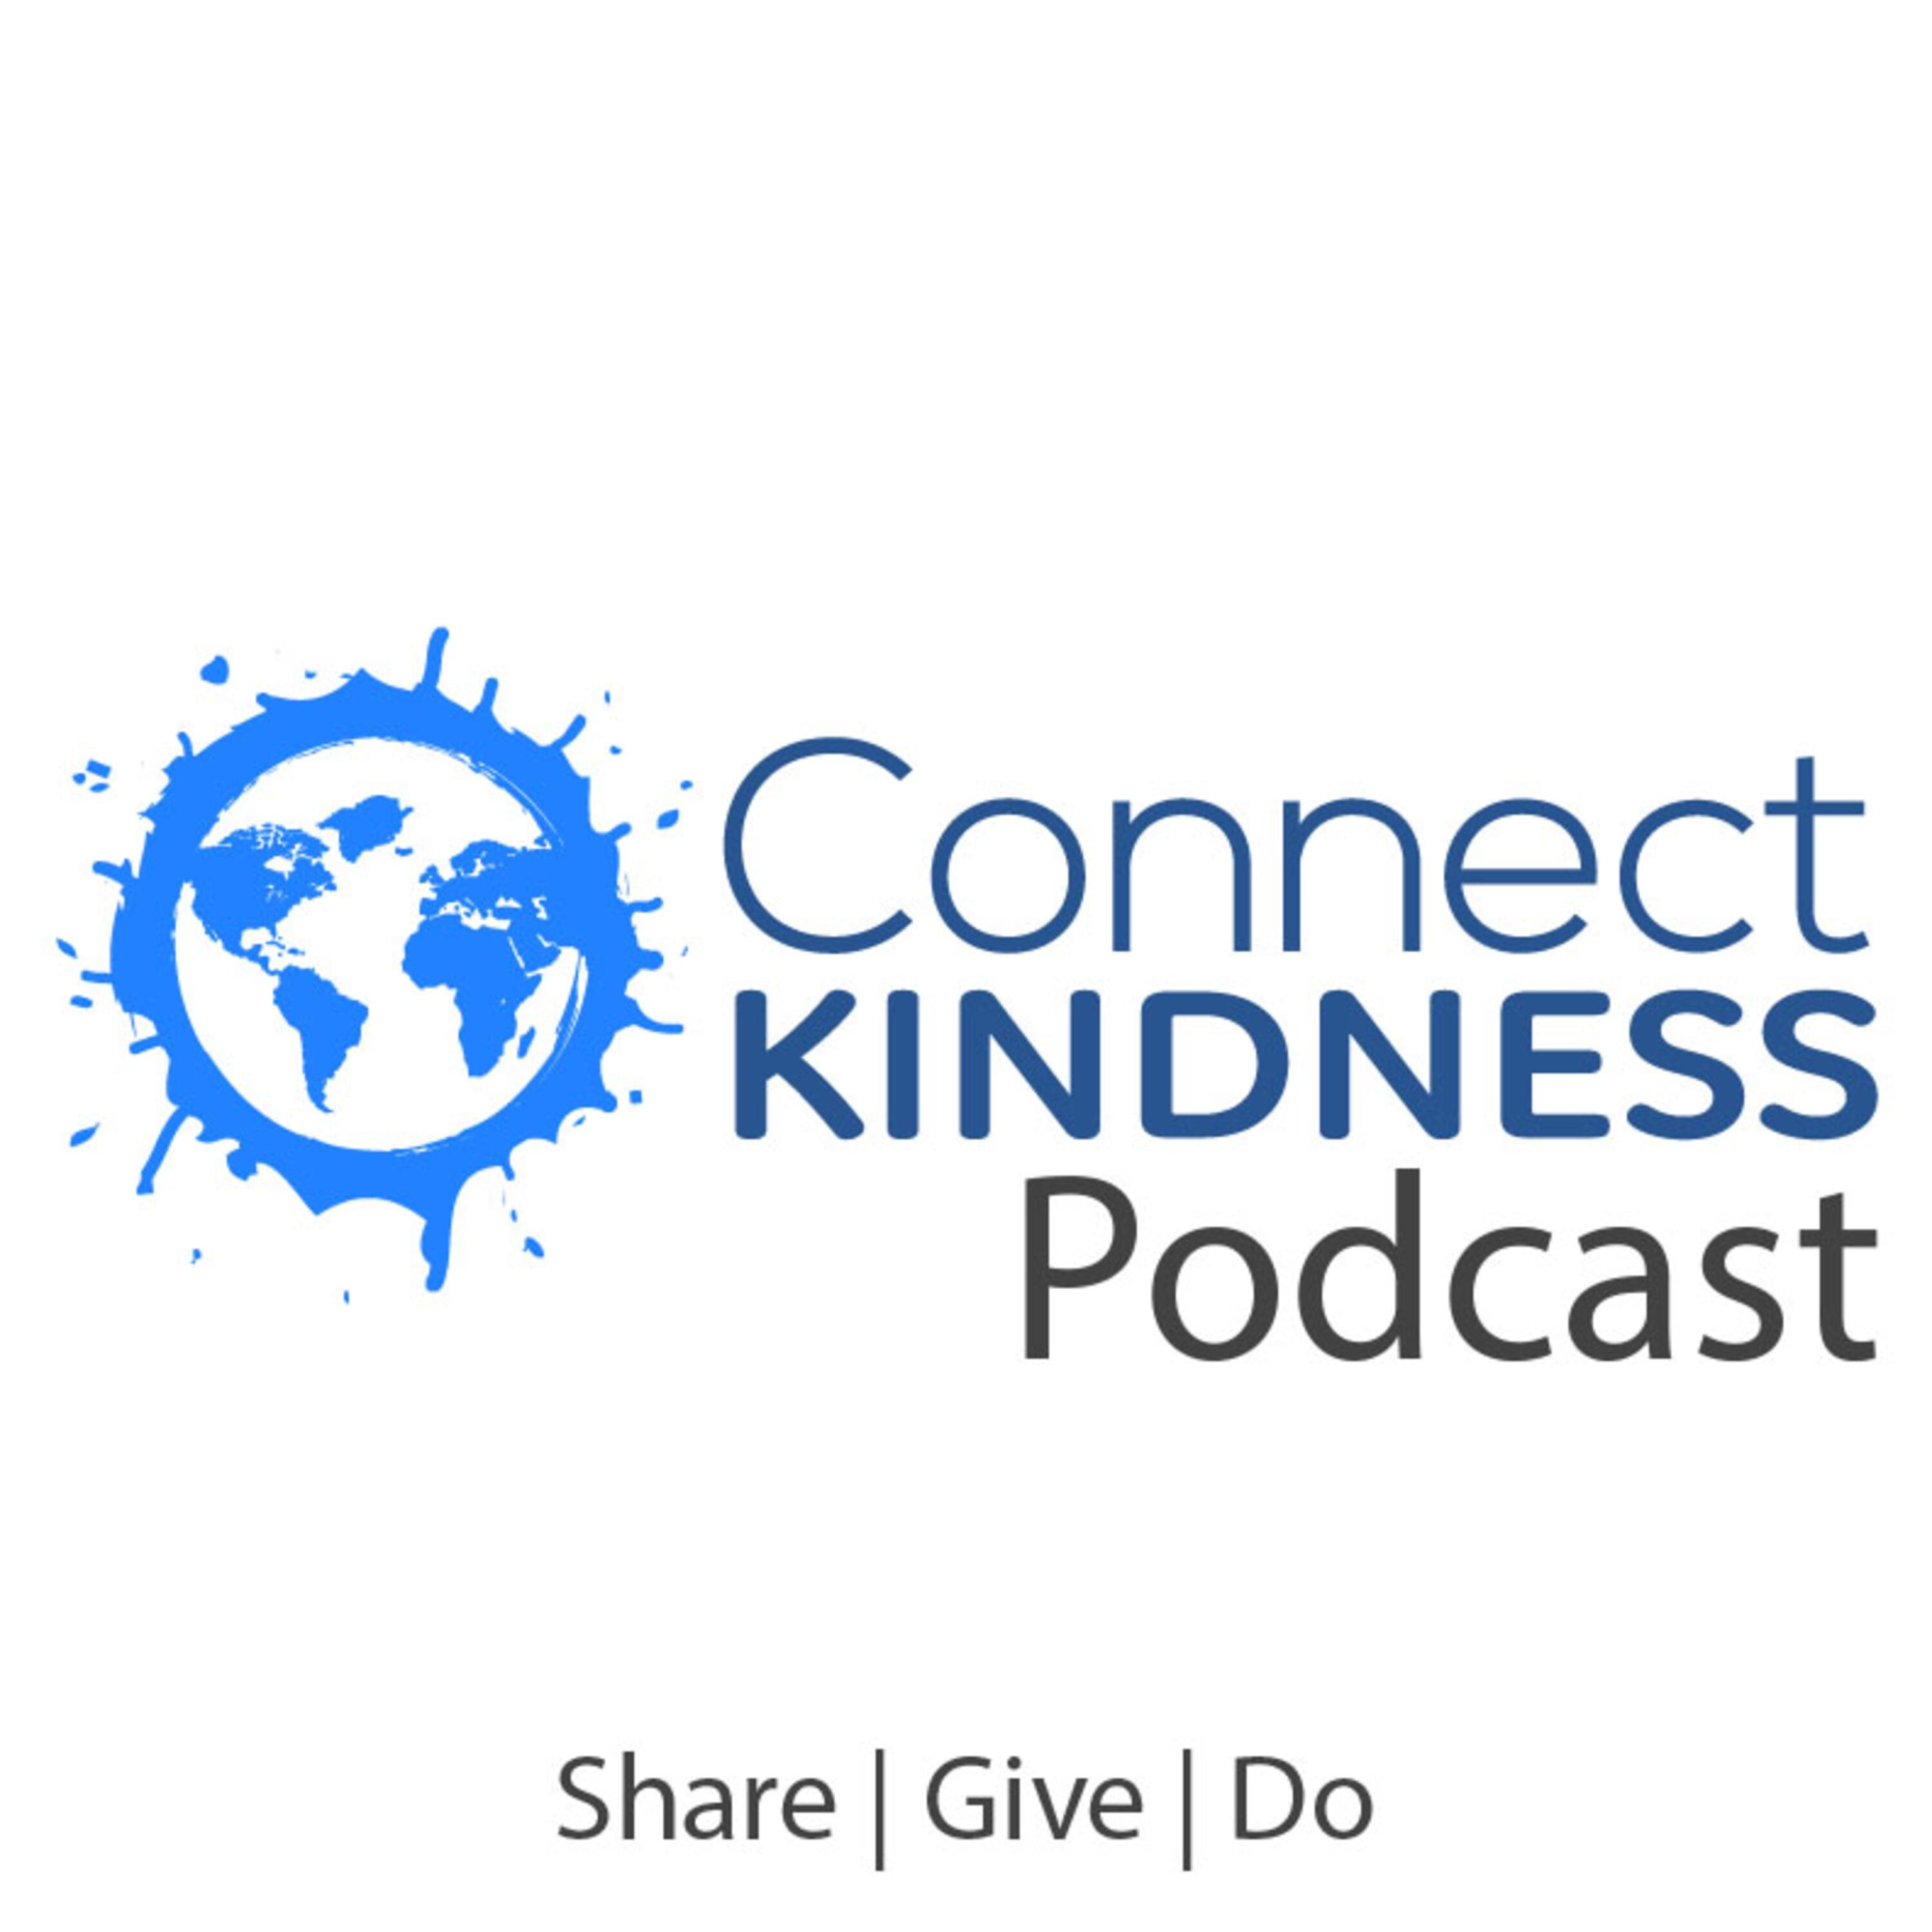 Connect Kindness Podcast